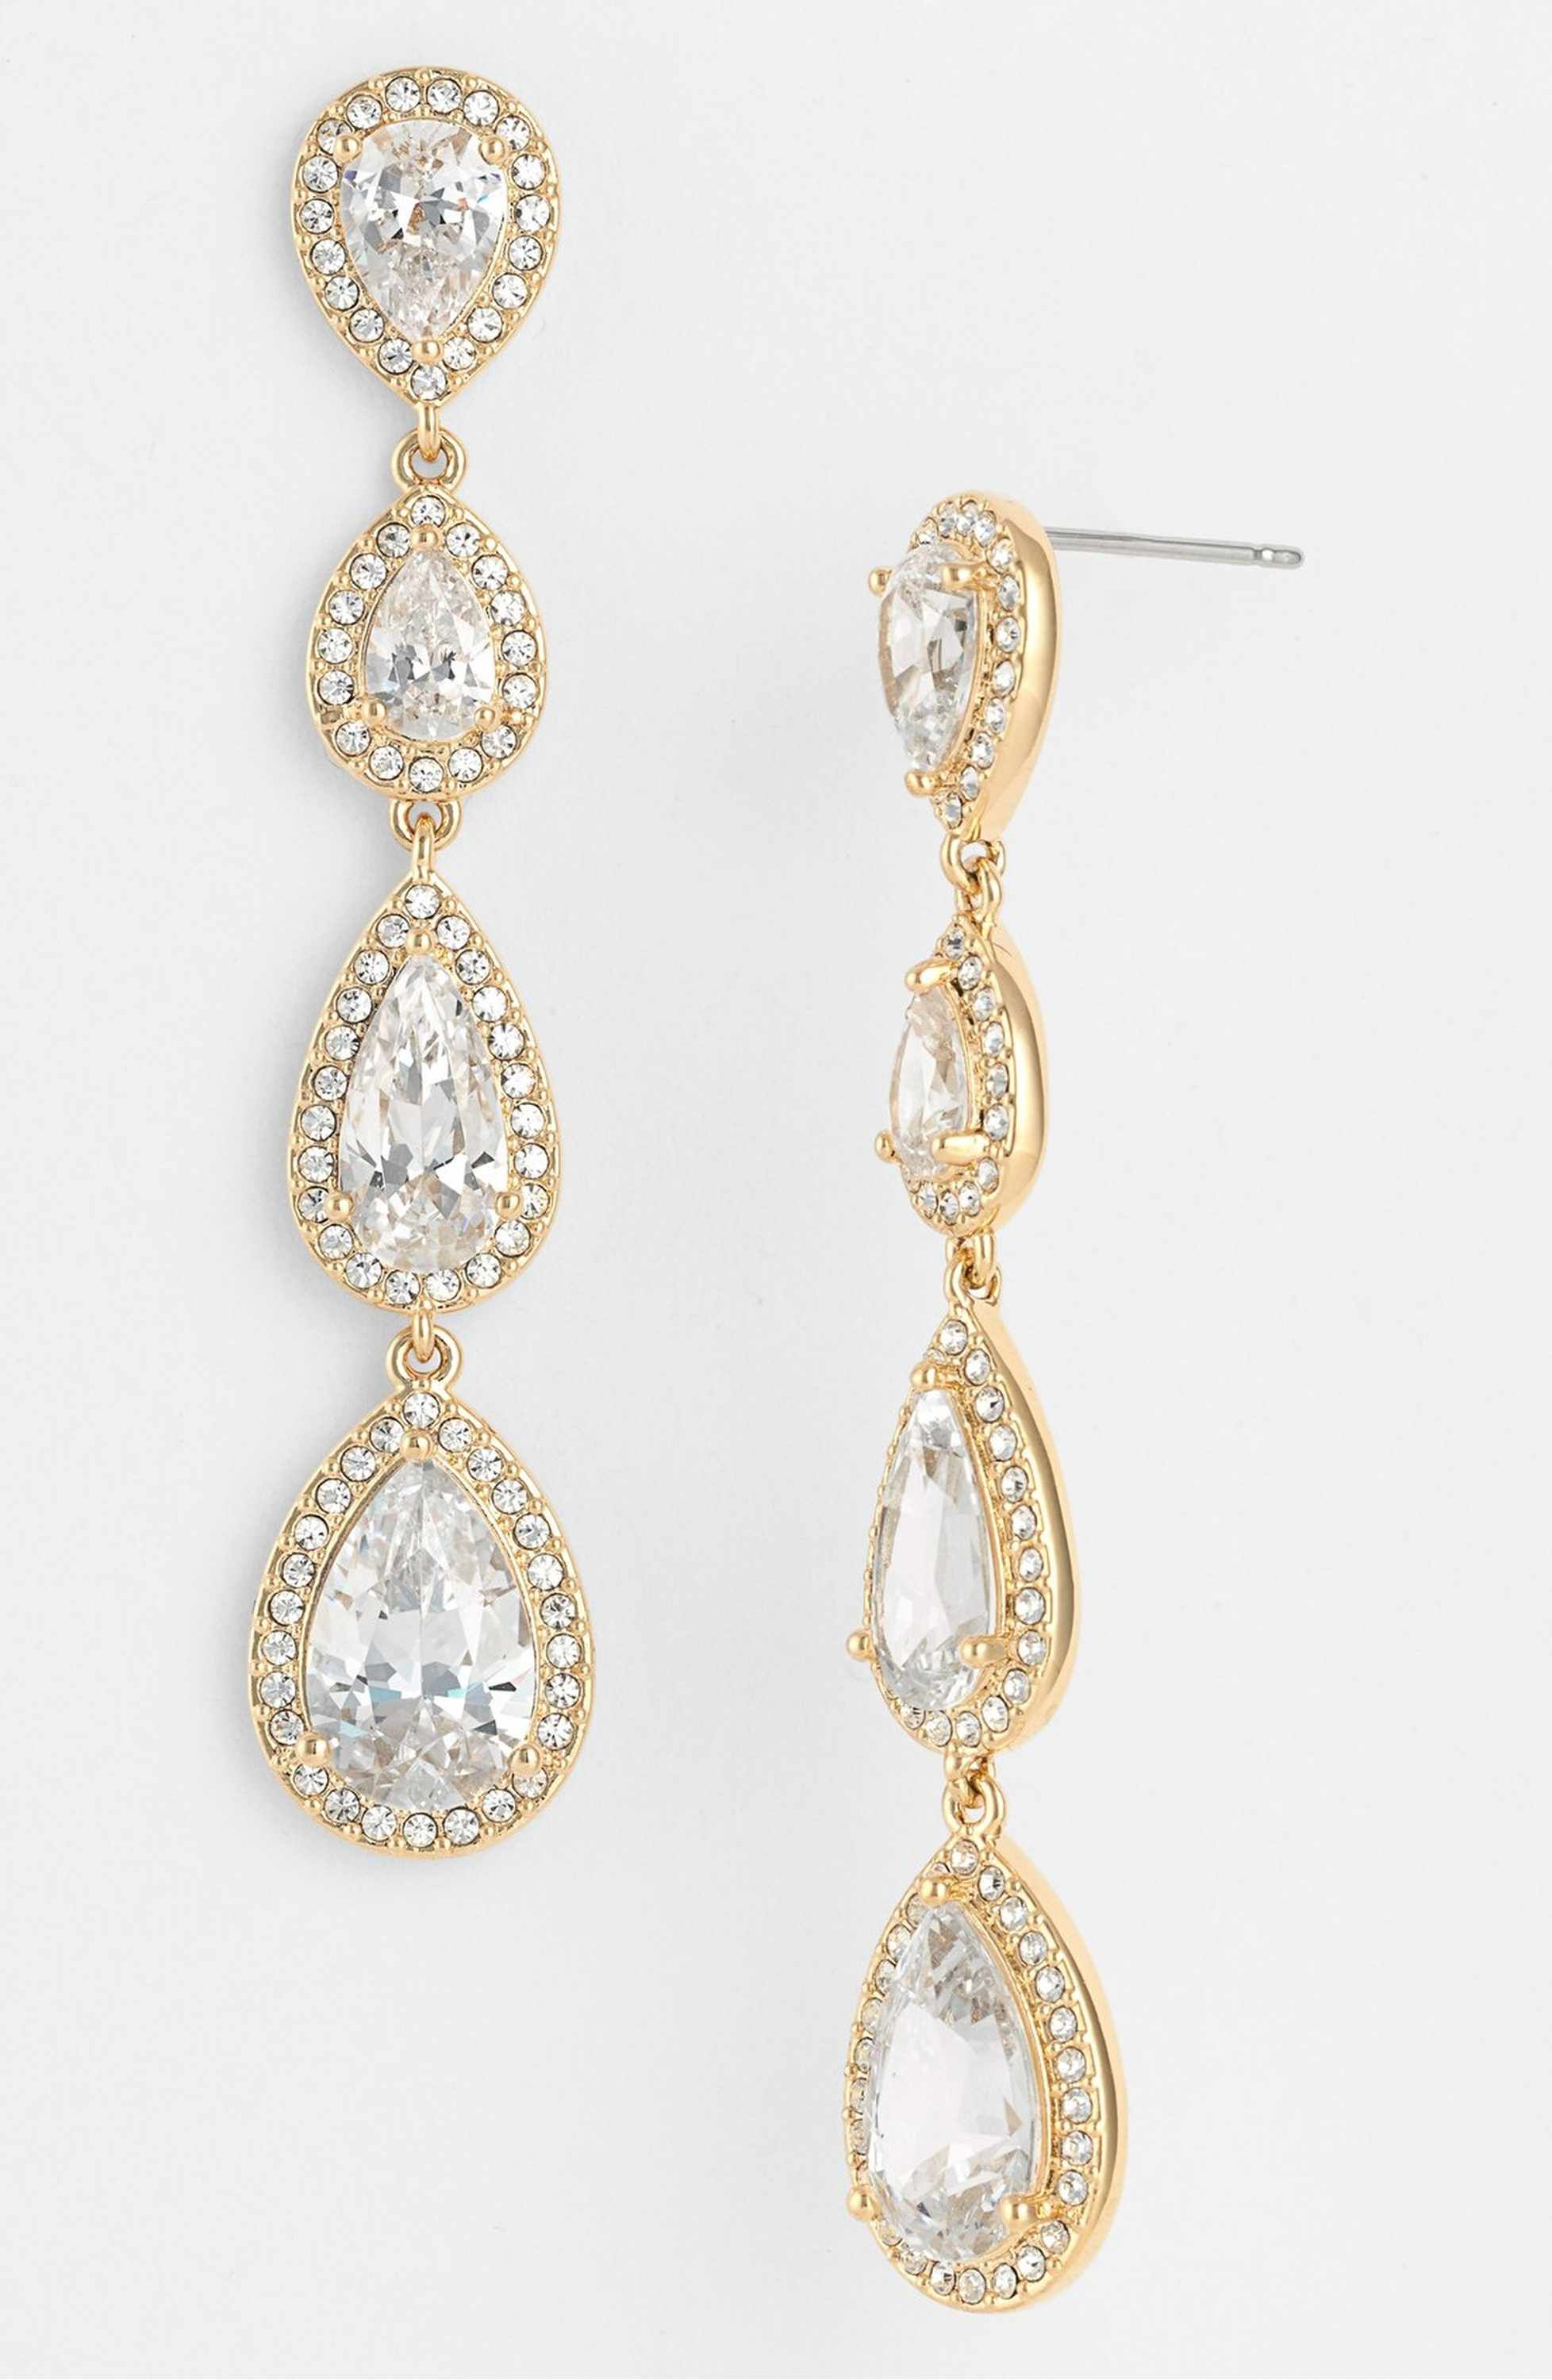 Linear earrings classic beauty nordstrom and shapes